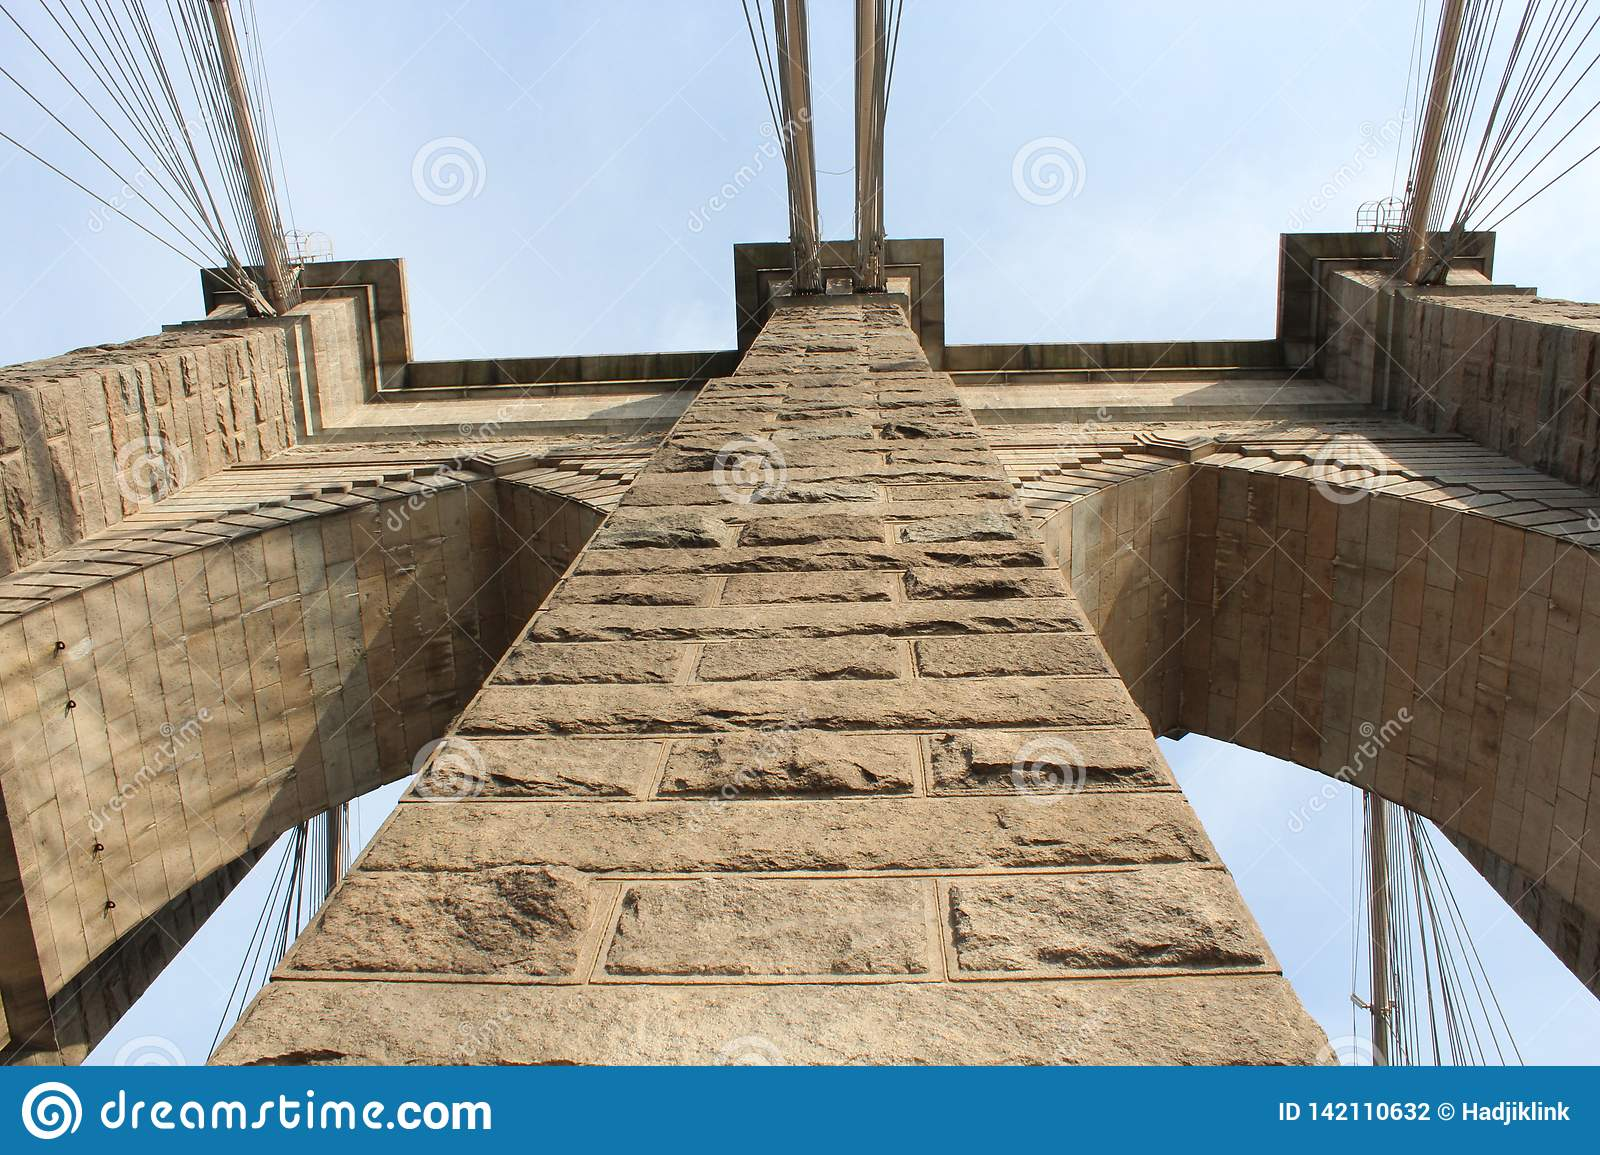 Brooklyn bridge. View from the bottom up.